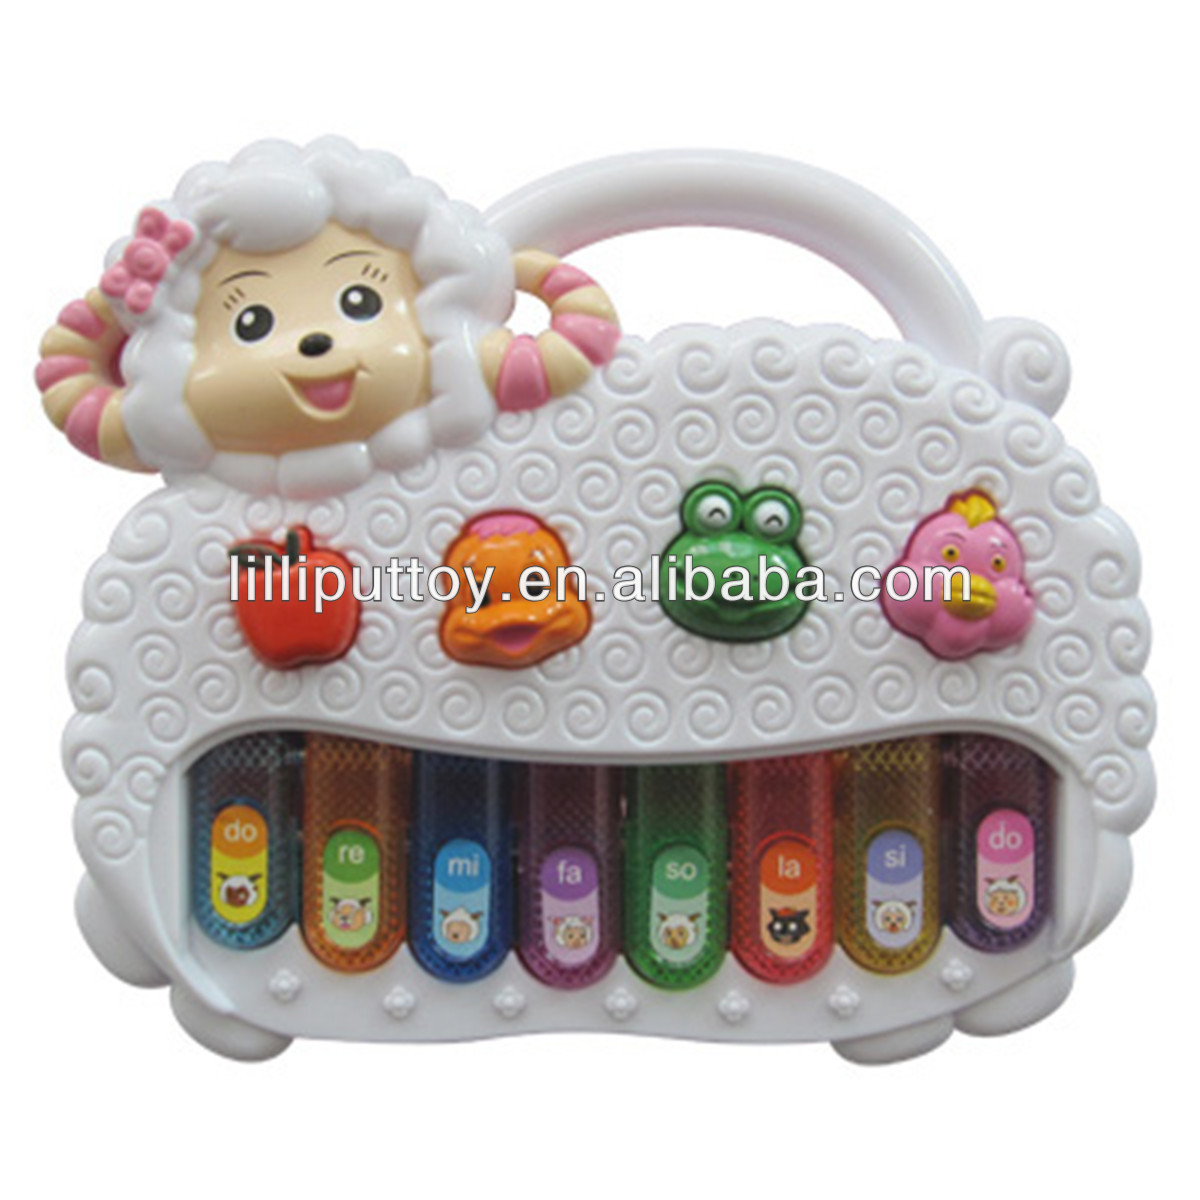 Children Musical Electronic Organ Toy Sheep Style